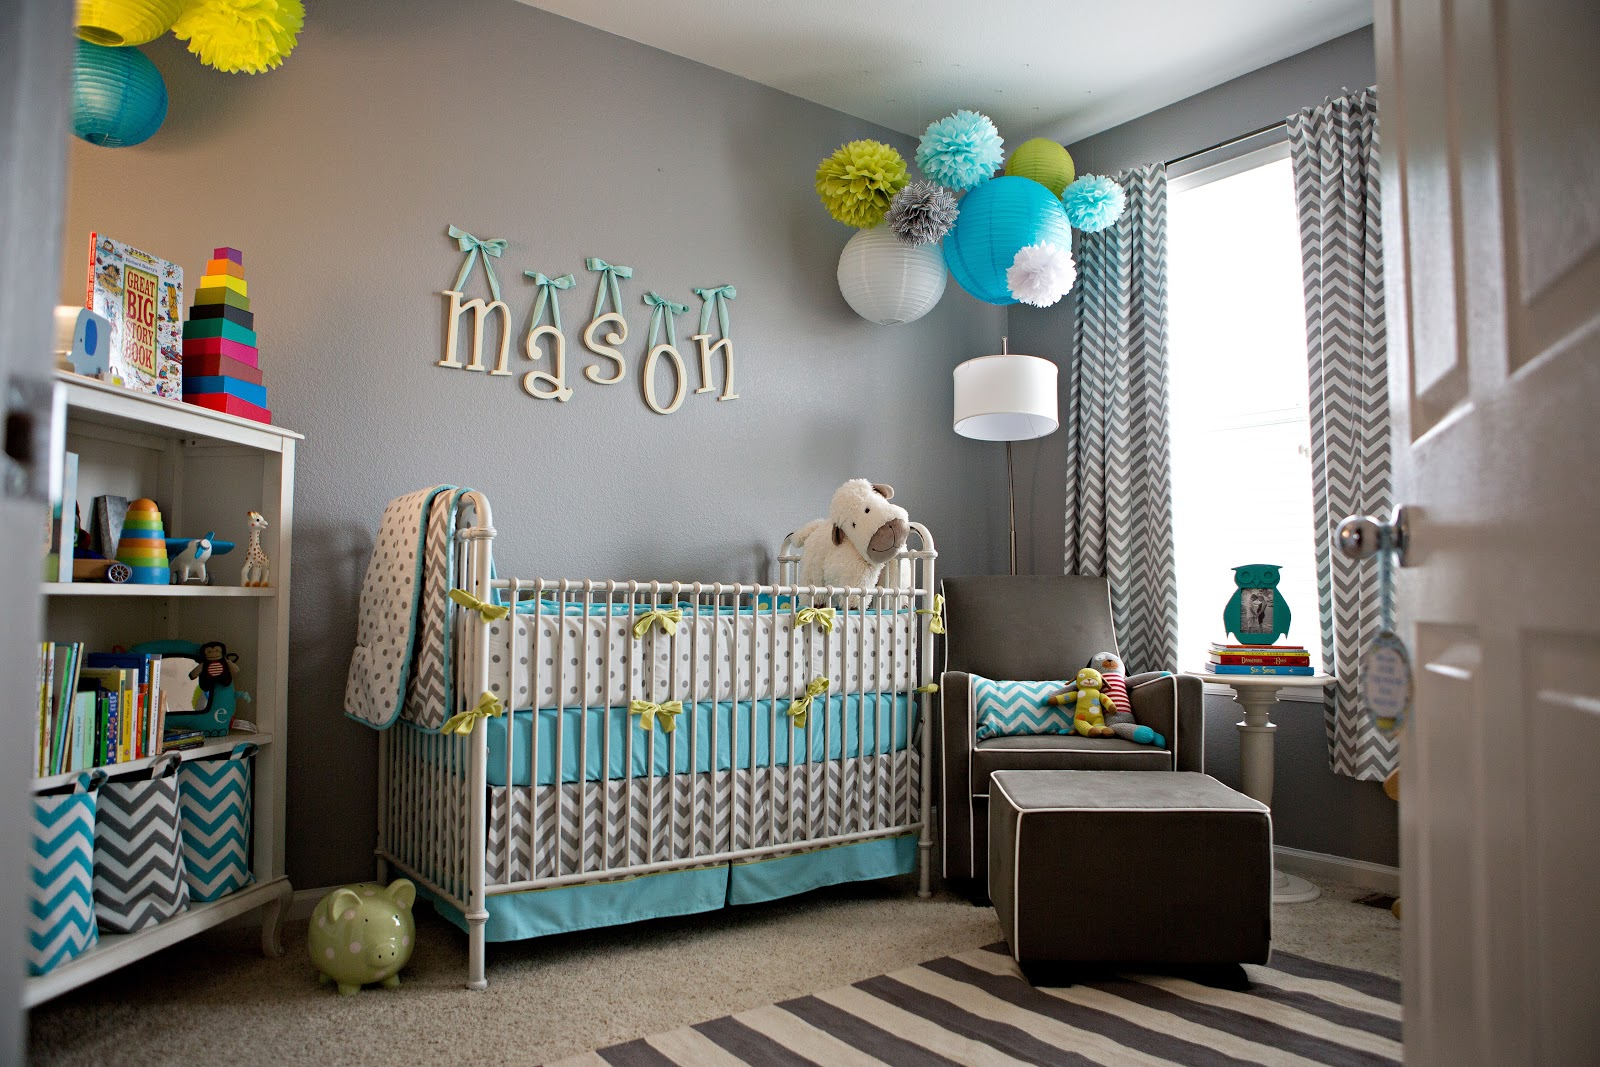 10 Beautiful Nursery Inspirations-round-up - Page 2 of 2 ...